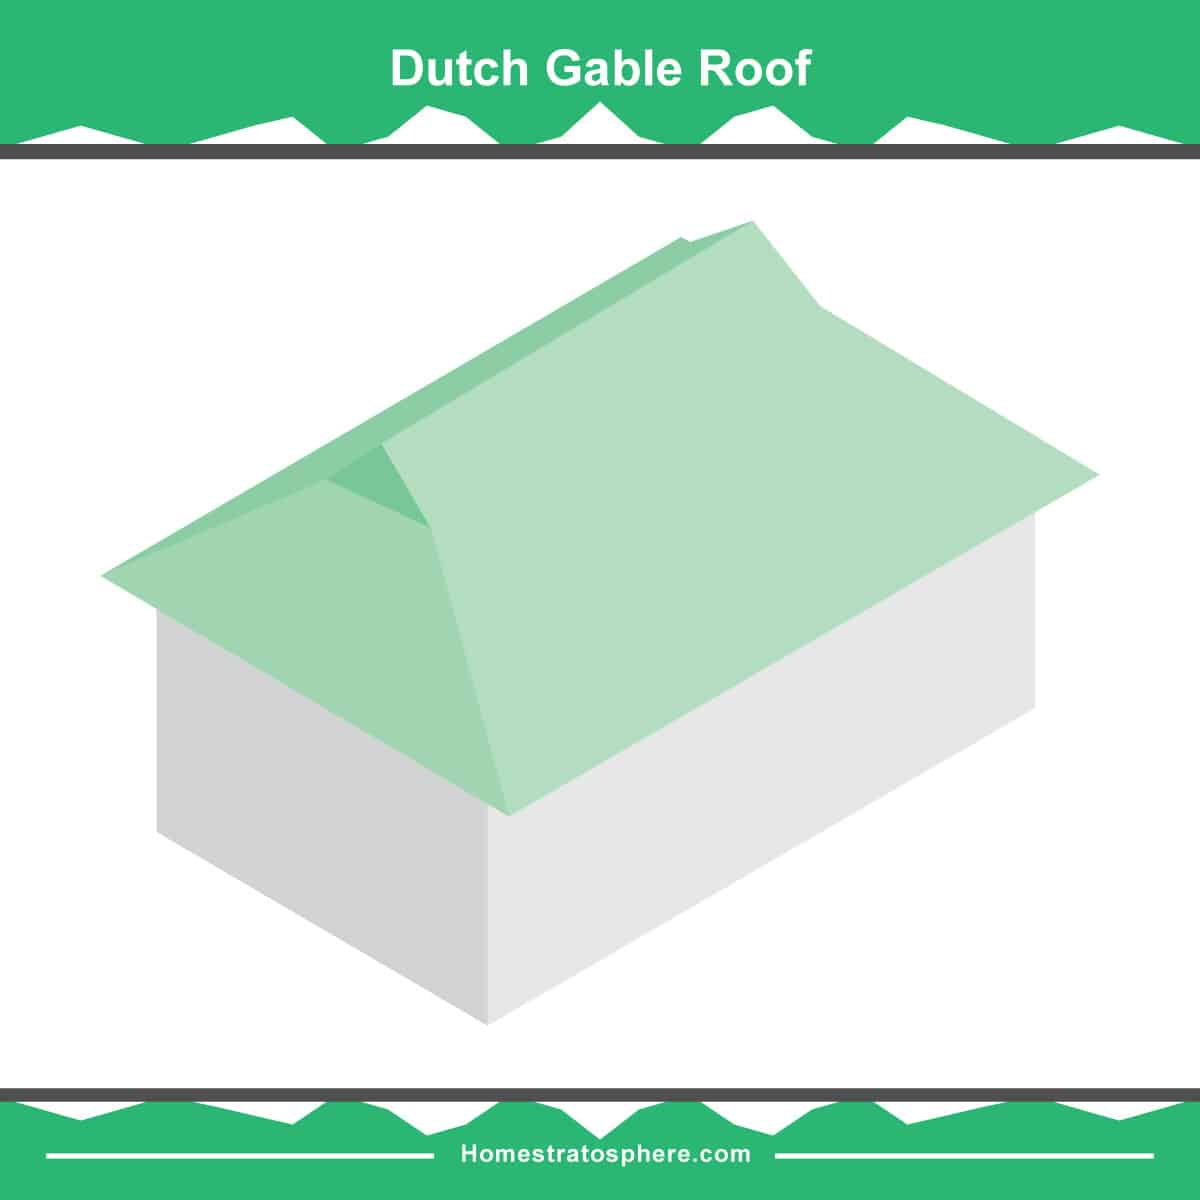 Dutch gable roof diagram